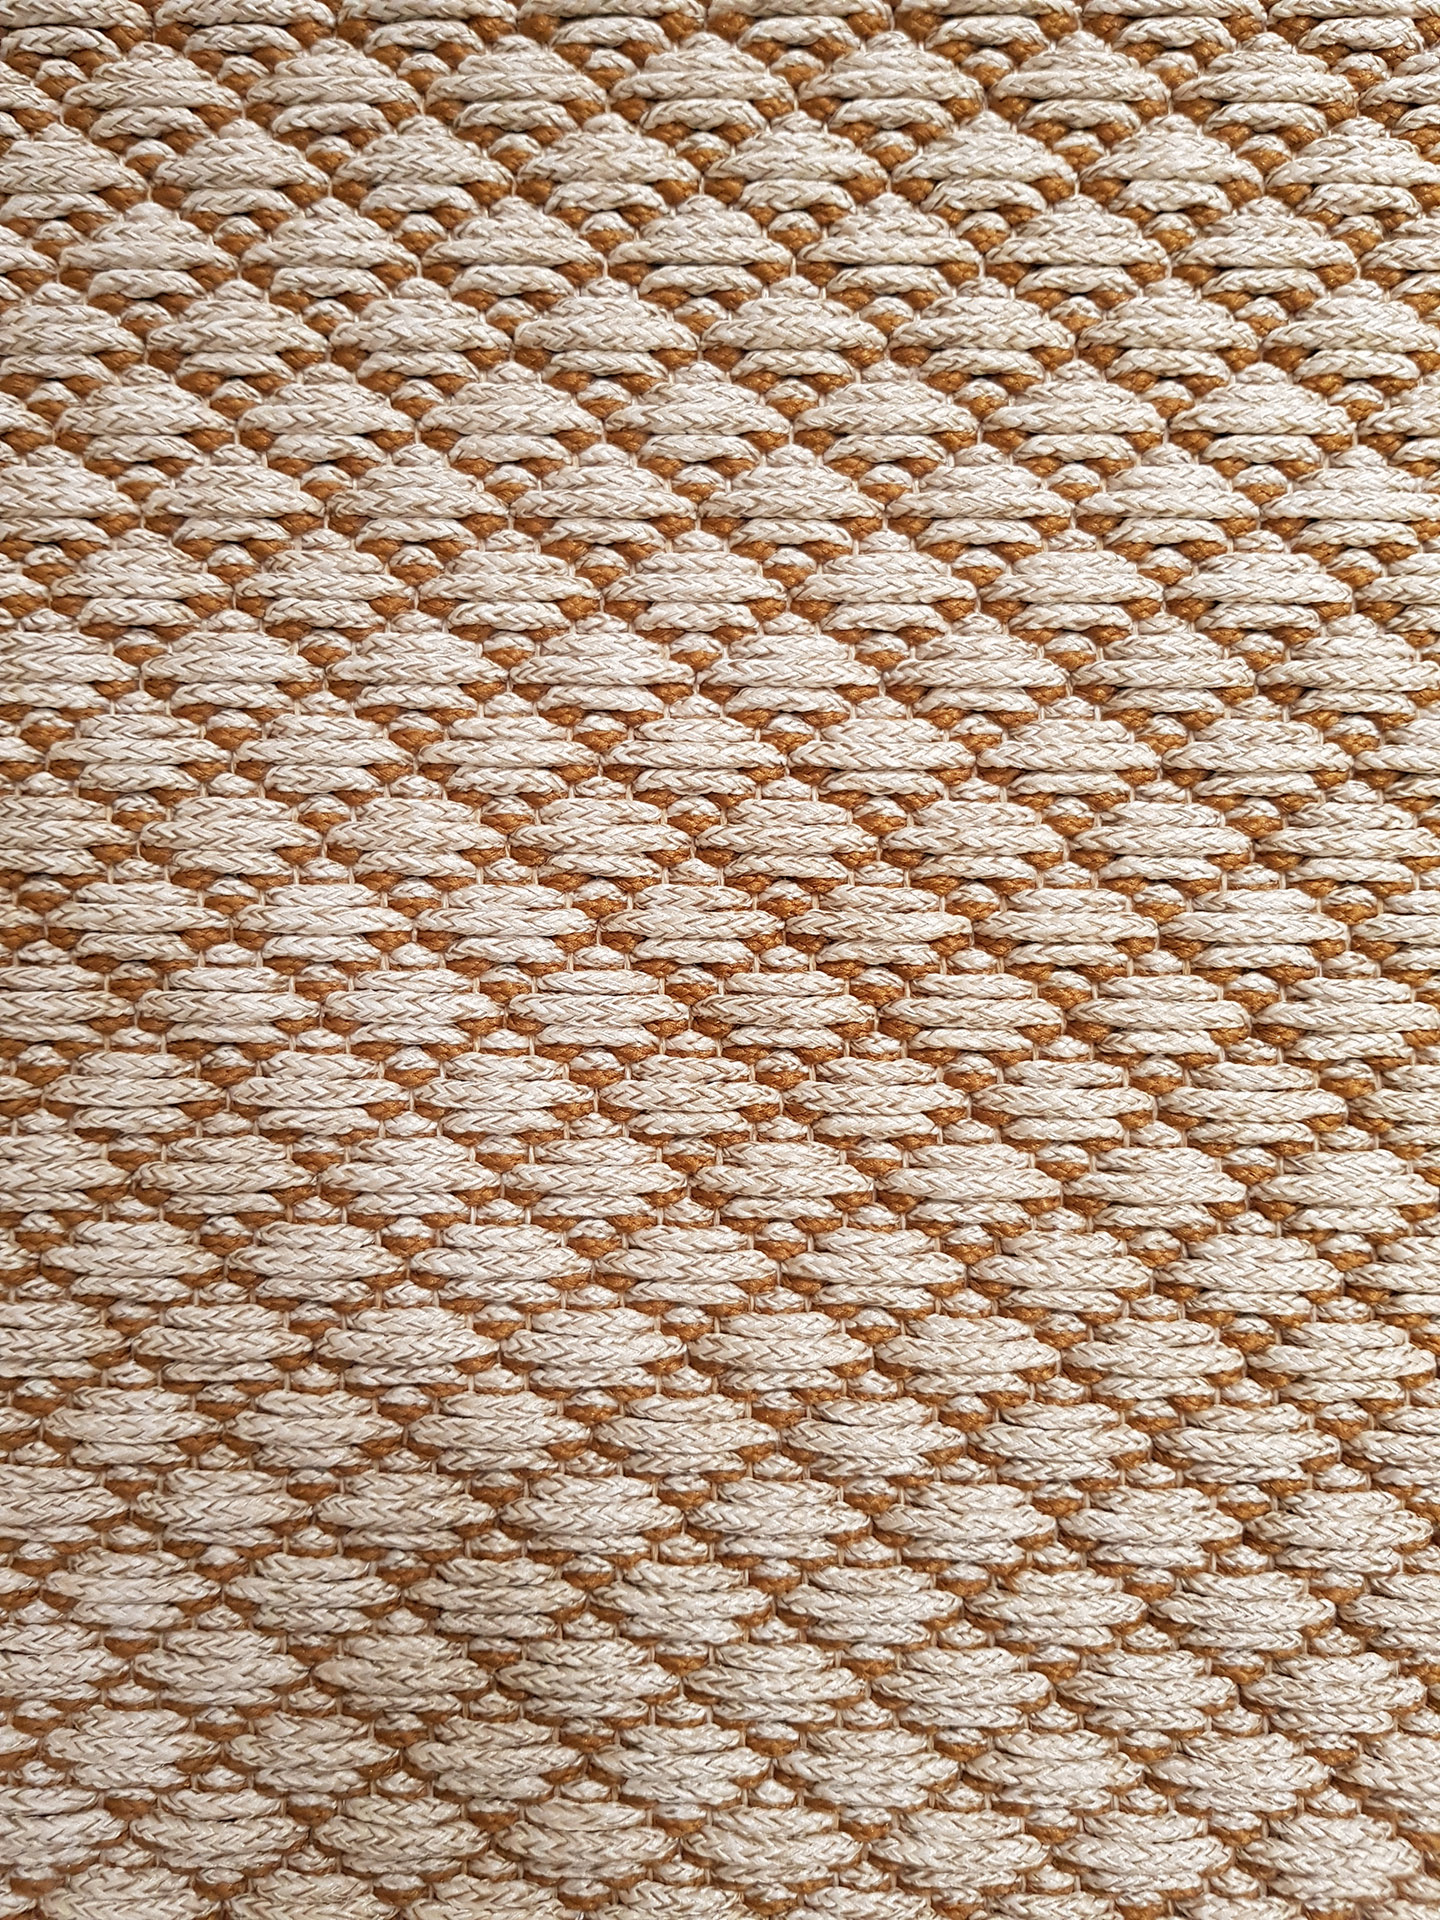 What You Need To Know About Hand Woven Rugs